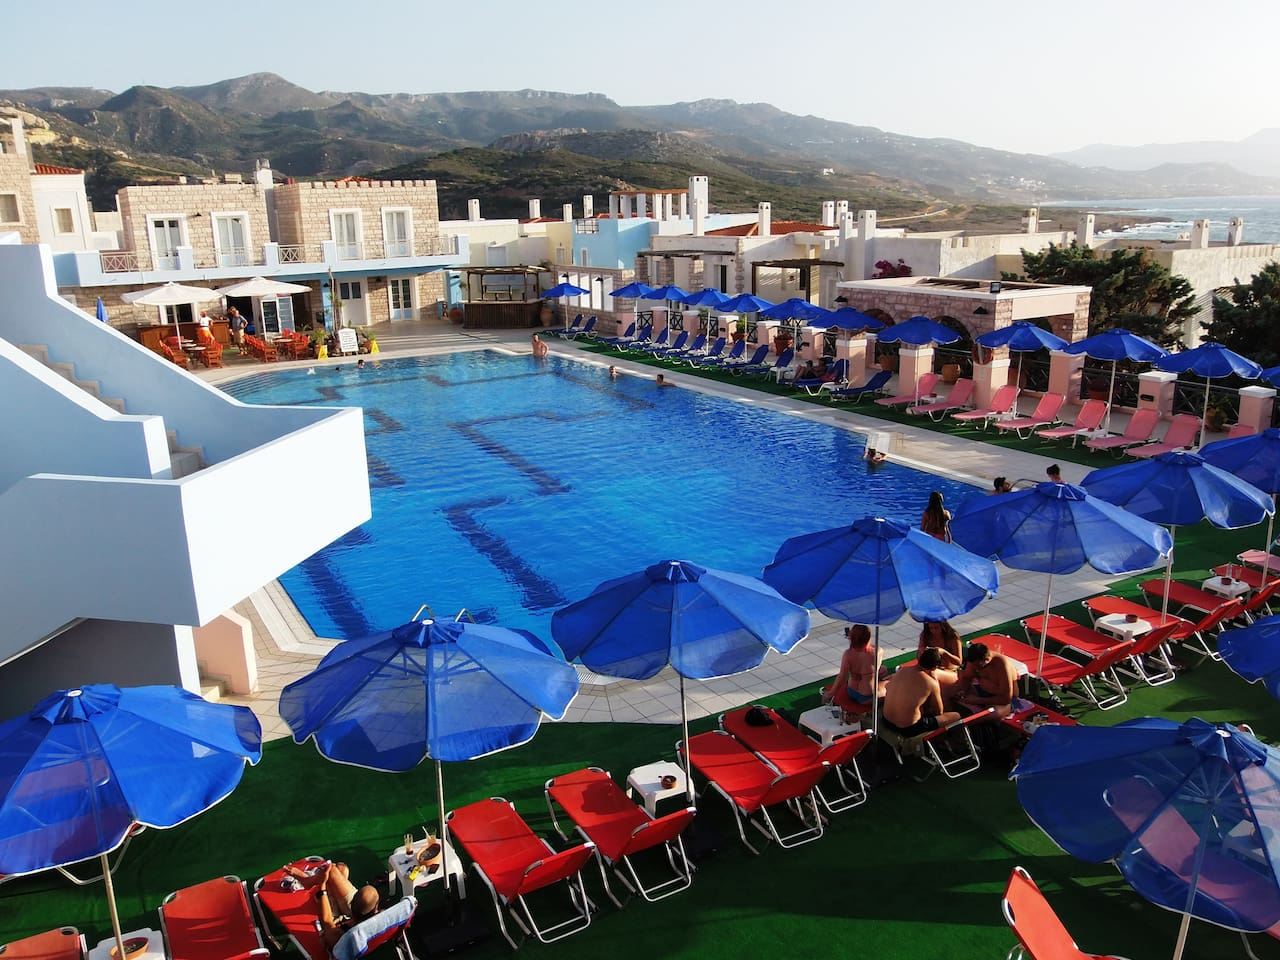 THE SWIMMING POOL IS WORKING UNTIL 23 OF SEPTEMBER